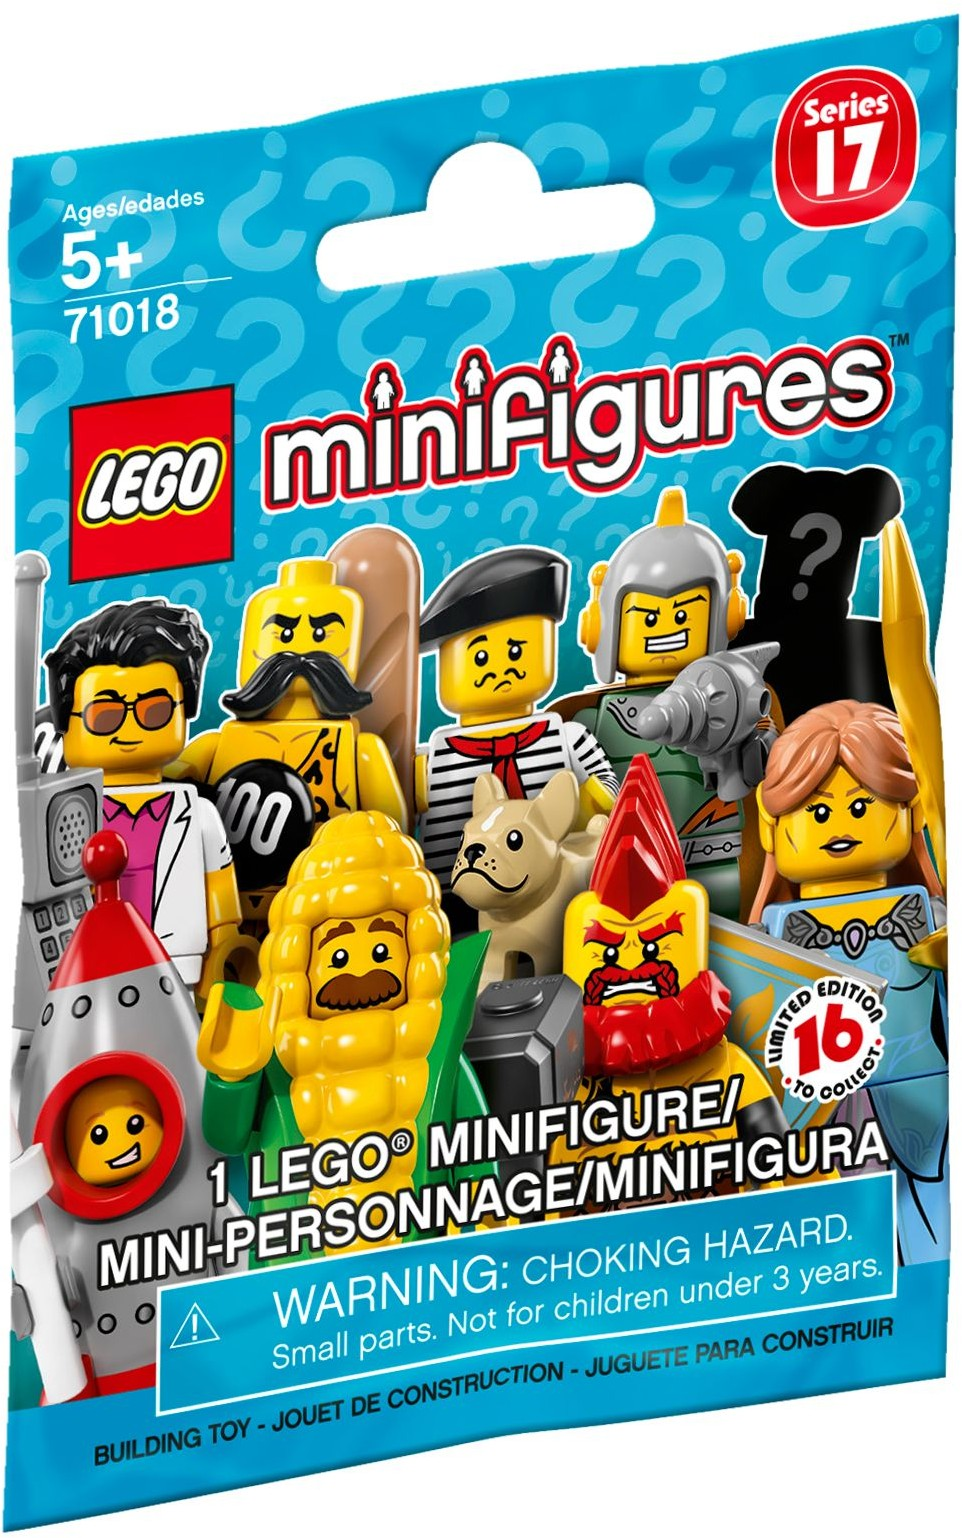 Lego Collectible Minifigure Series 17